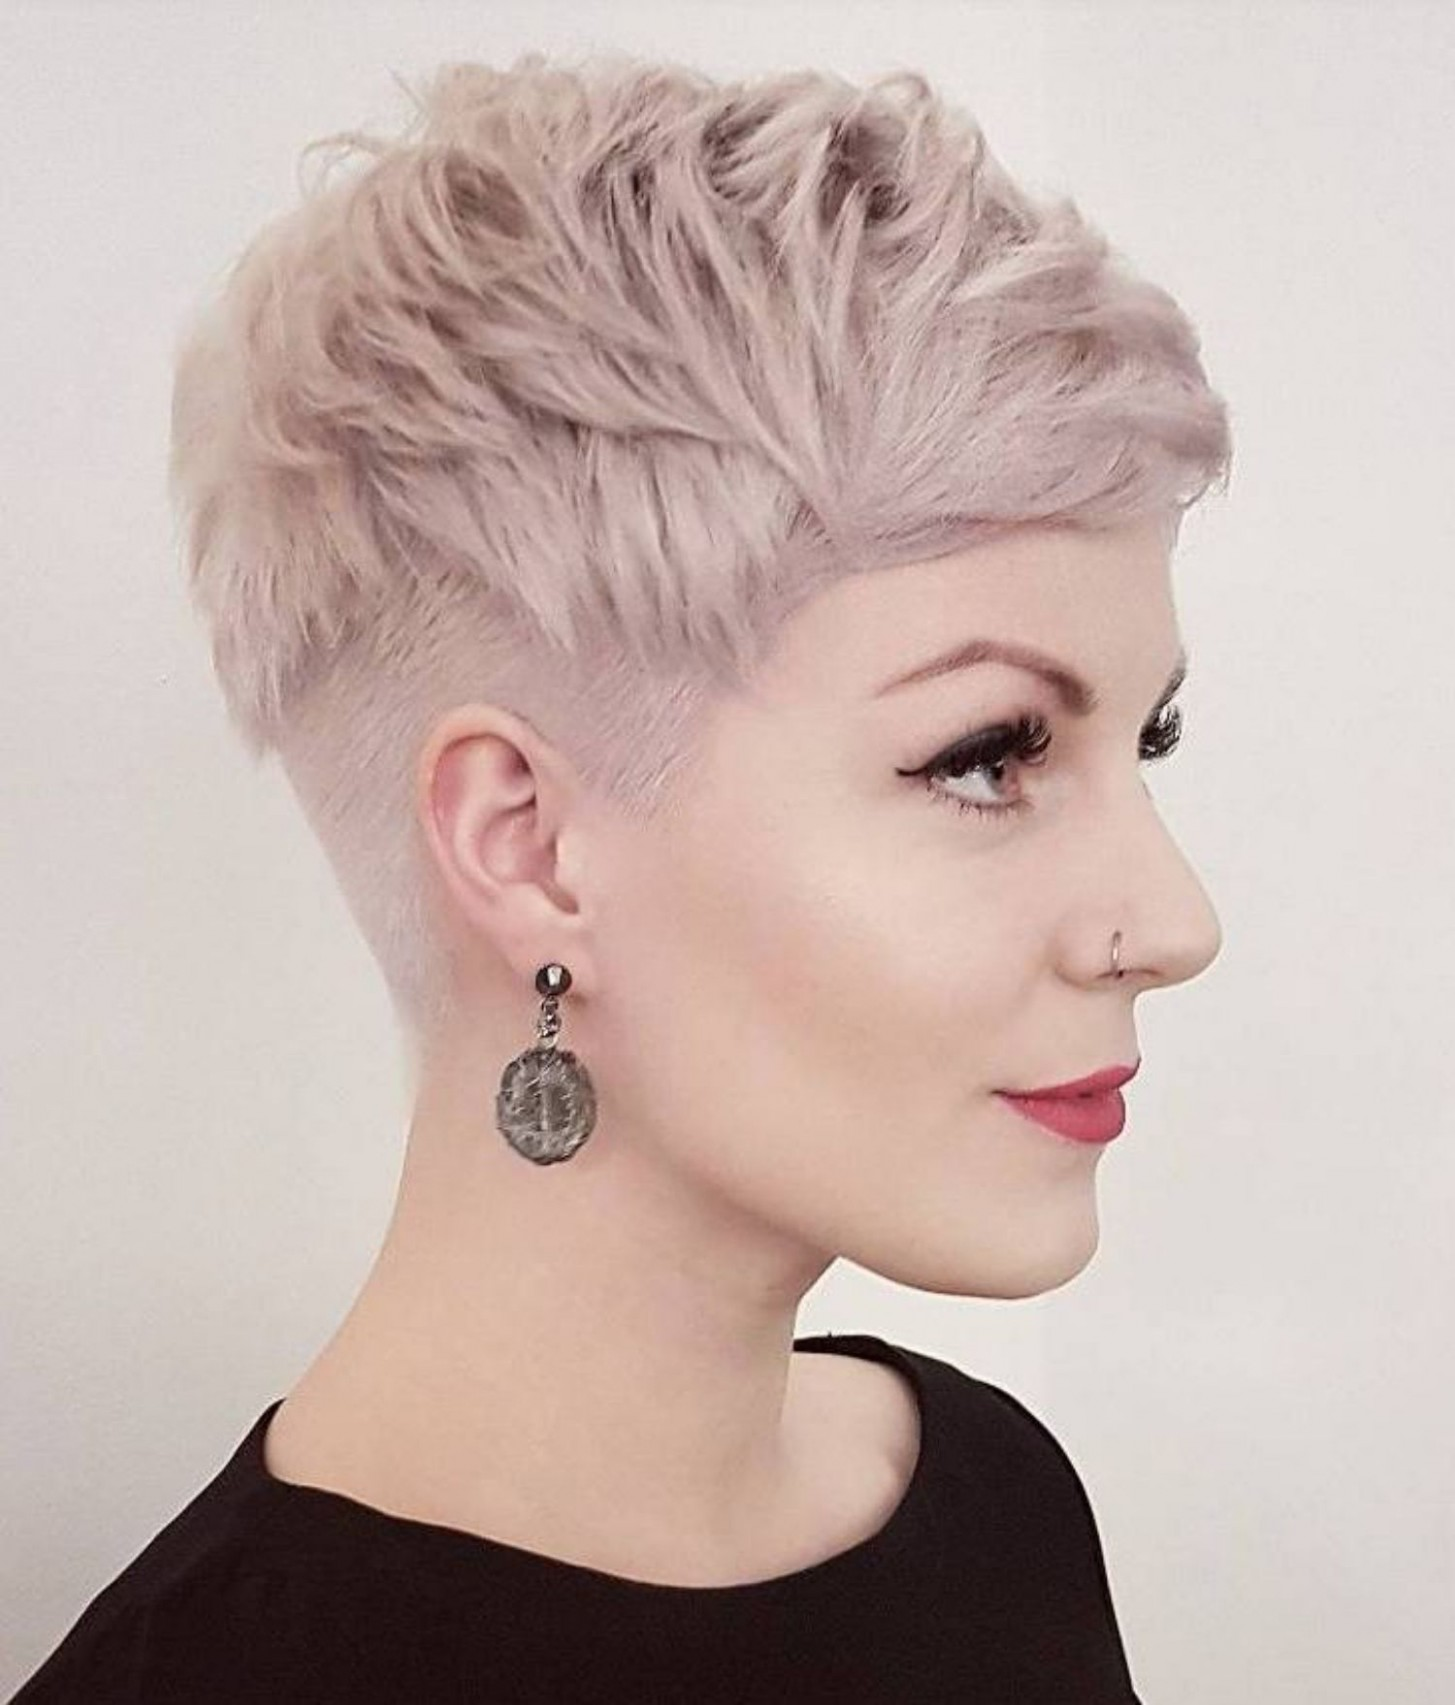 8 Cute Short Pixie Haircuts – Femininity and Practicality  Thick